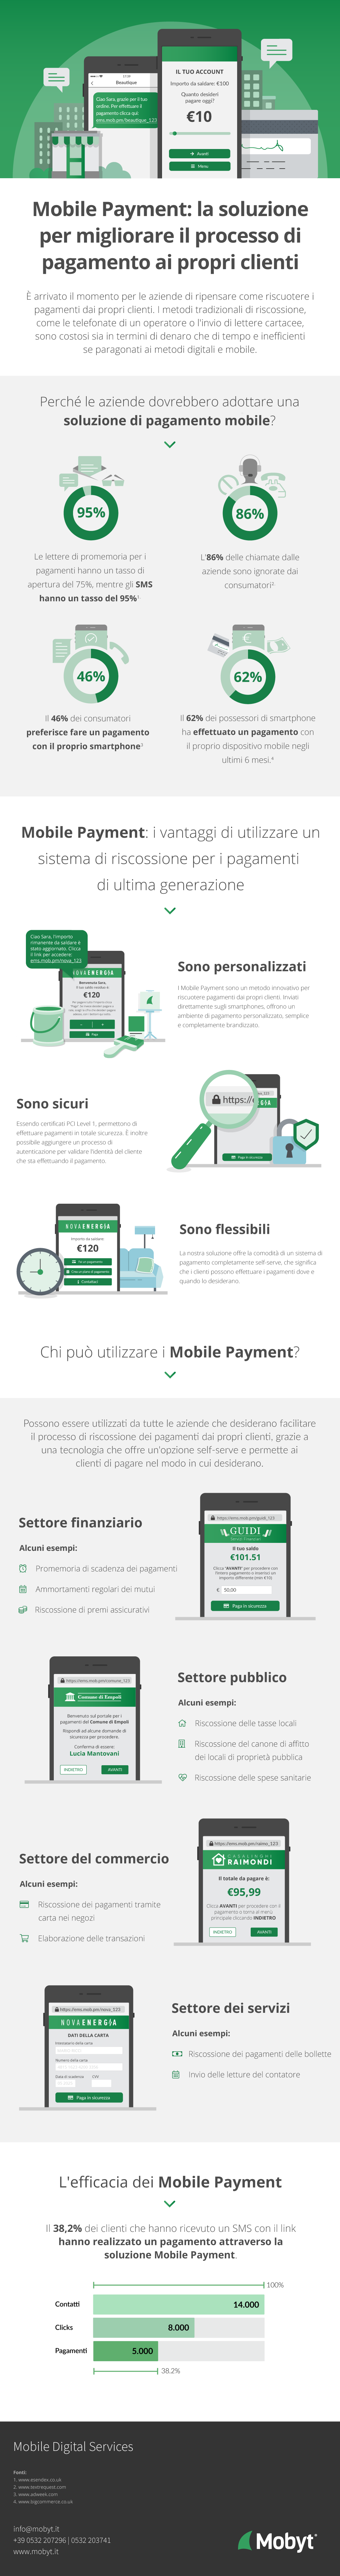 Mobile Payment Infografica  - Pagamento tramite link